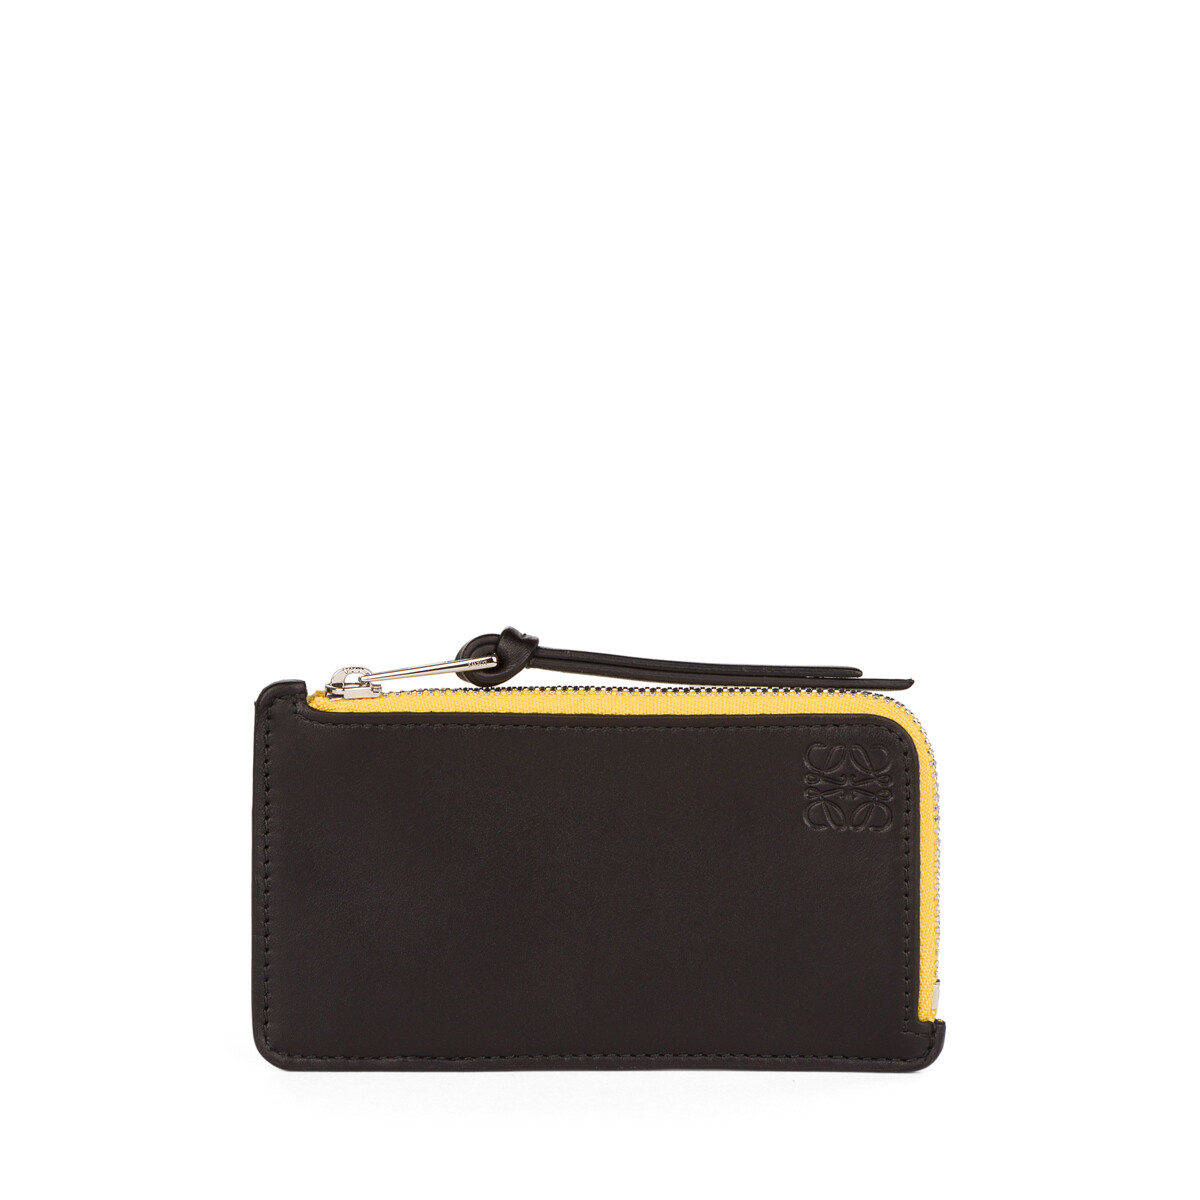 LOEWE Coin Cardholder Rainbow Multicolor/Negro front